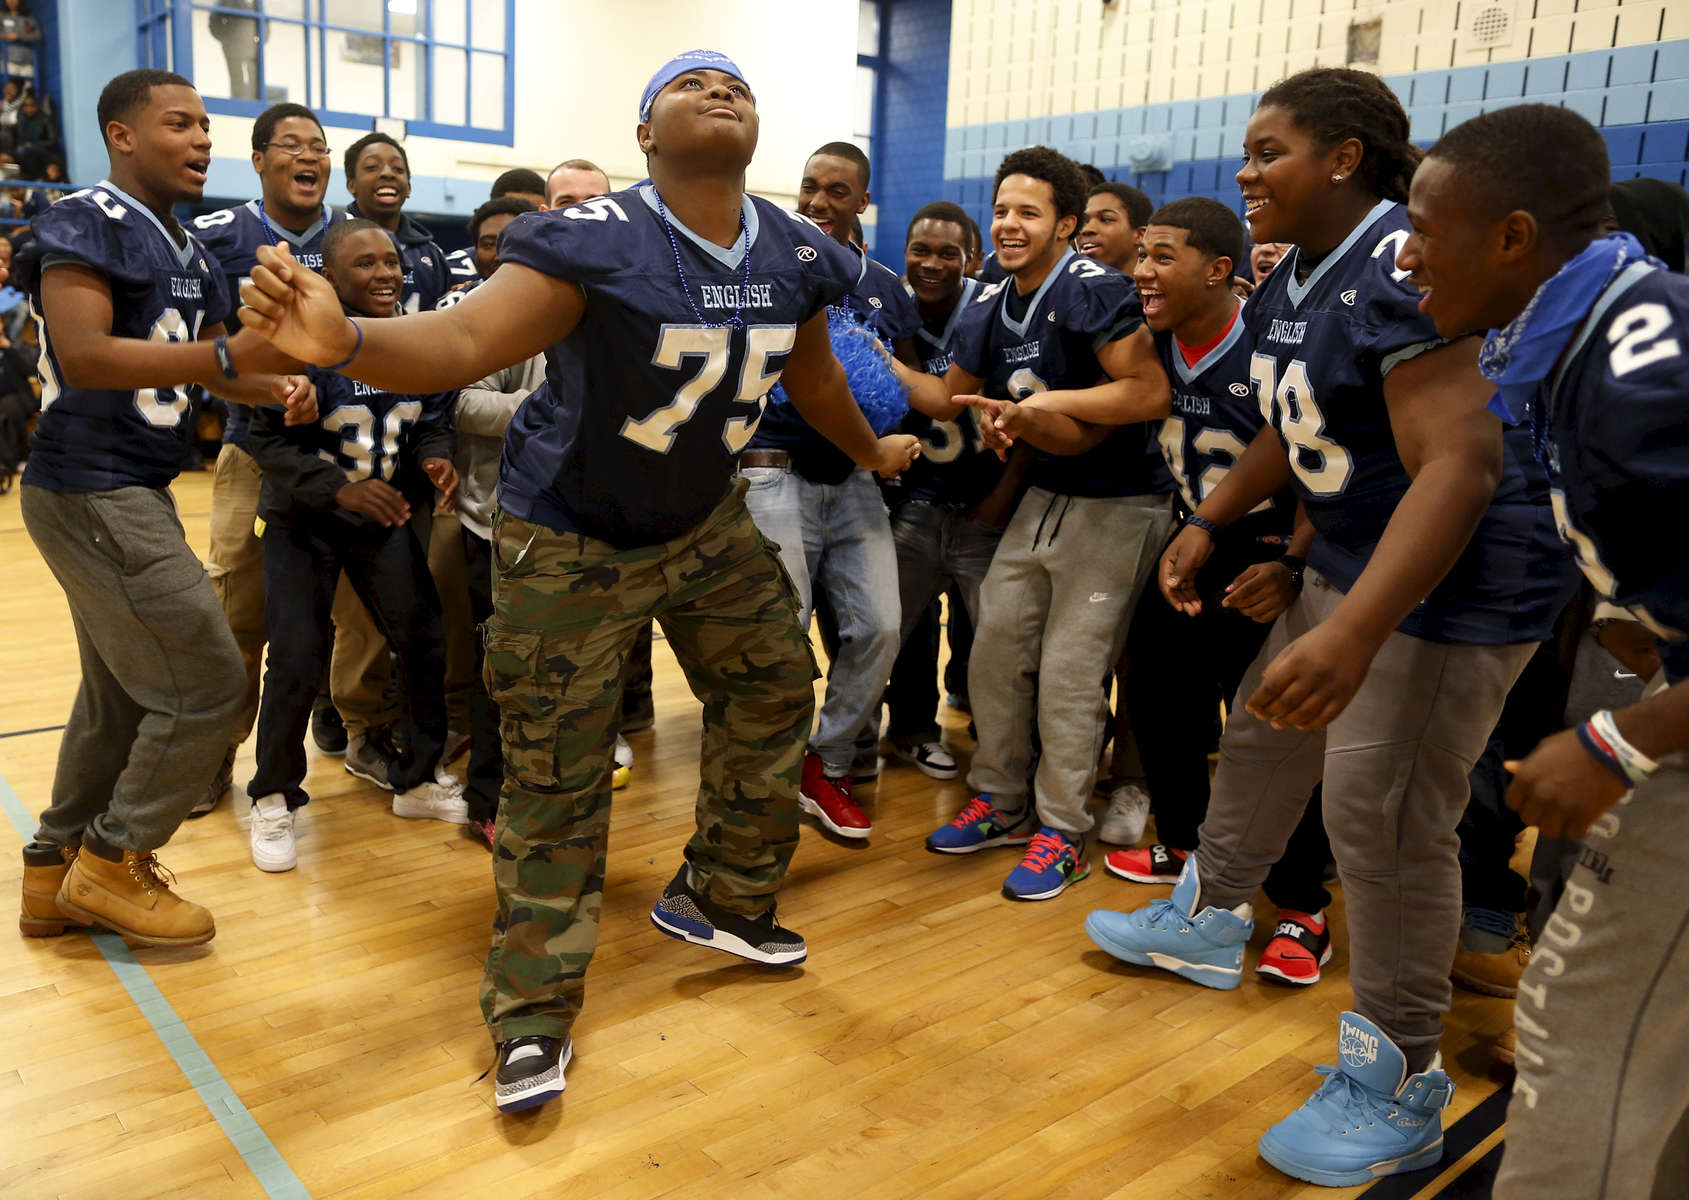 Jamaica Plain, Massachusetts -- 11/26/2014-- English High Marching Band member and football player Keishawn Guillaume, 16, of Jamaica Plain (C) dances with members of the football team during a pep rally at English High School in Jamaica Plain, Massachusetts November 26, 2014.